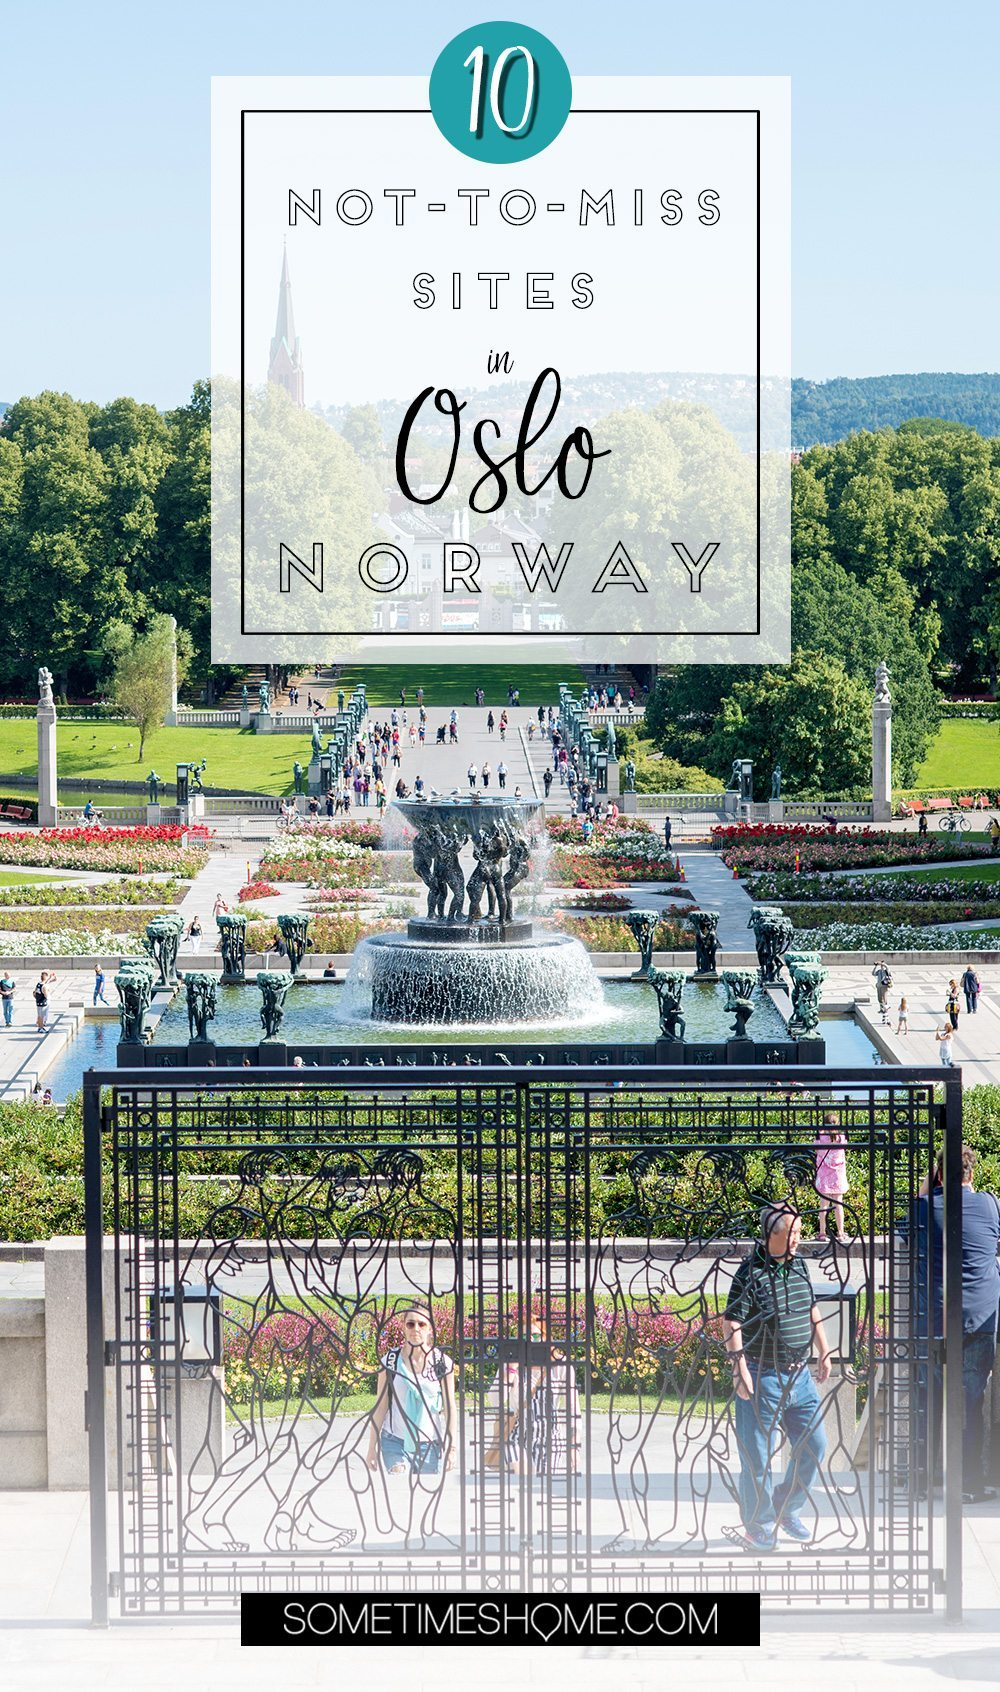 10 Not-to-Miss Sites in Oslo Norway on Sometimes Home travel blog with professional photos.